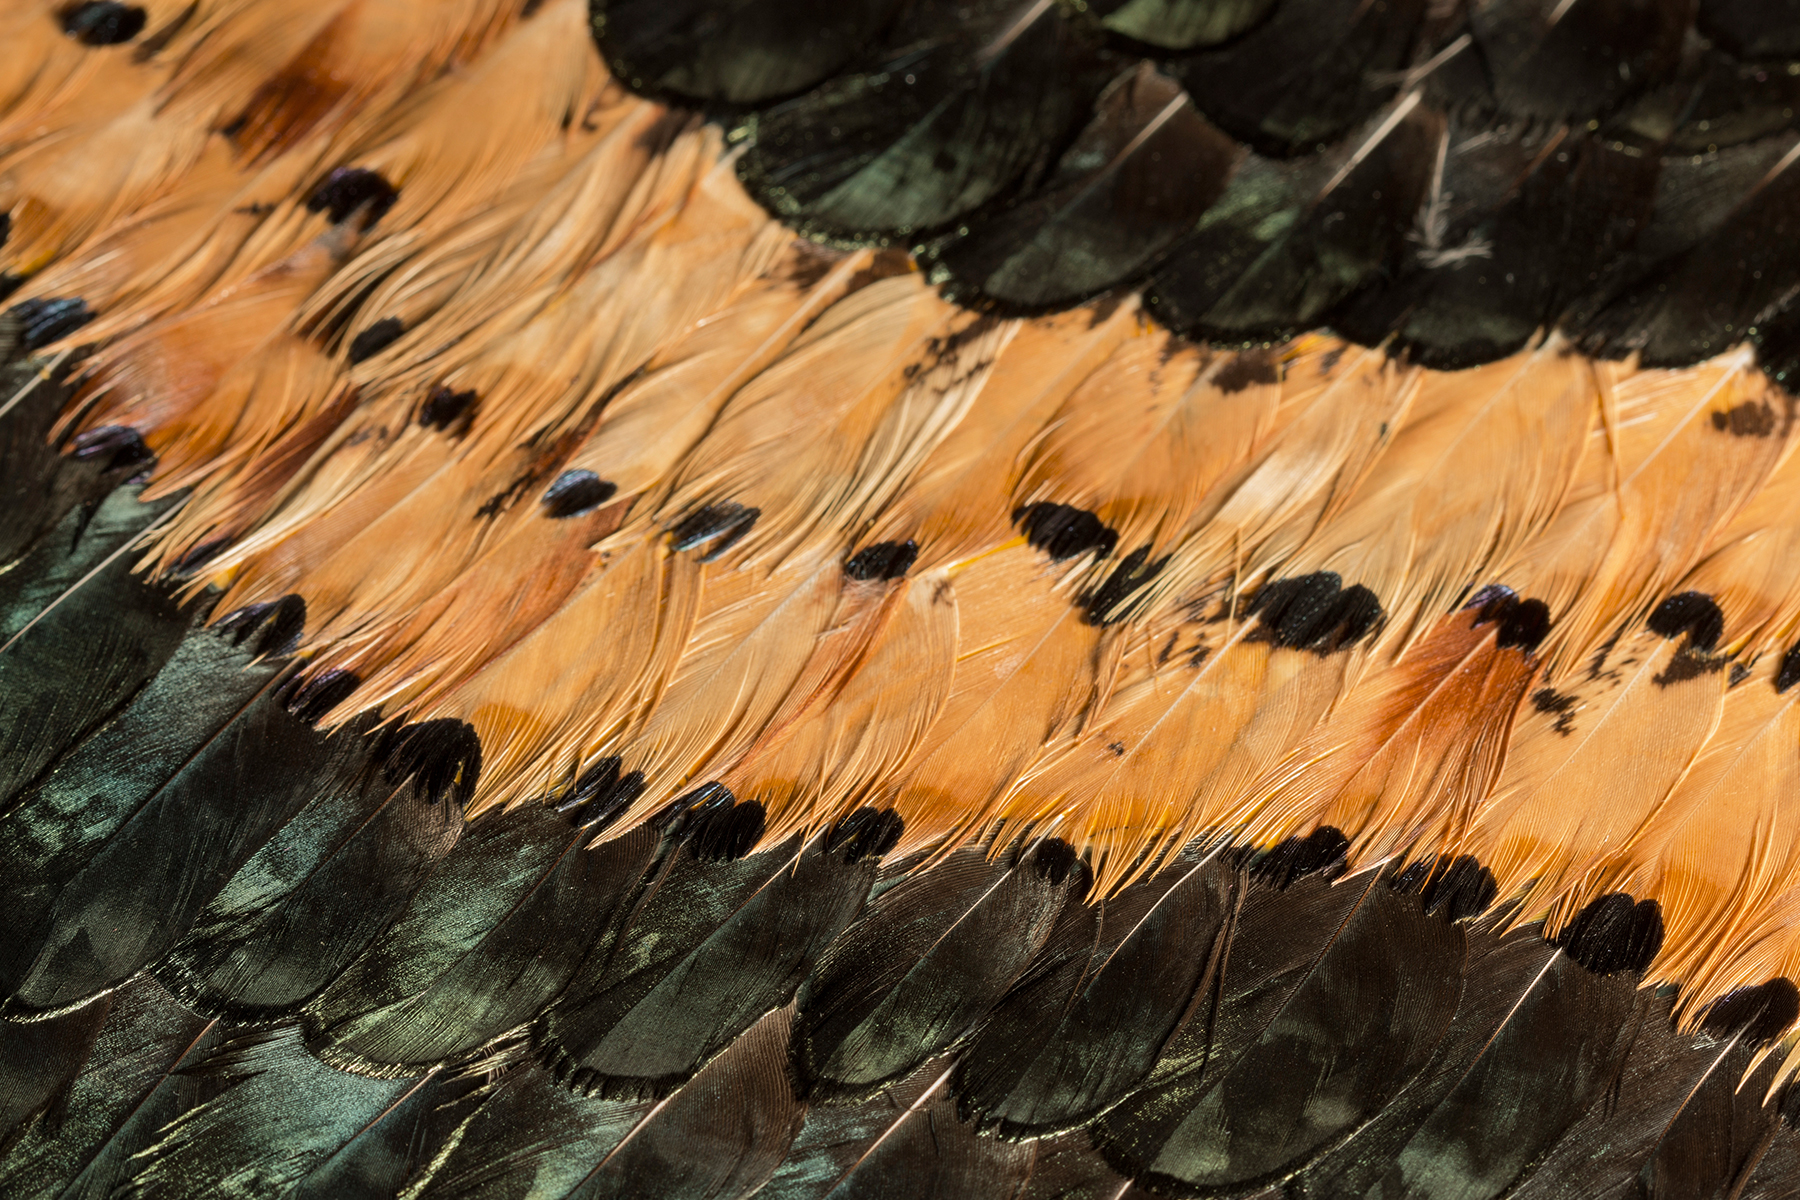 How to clean pheasant feathers - Peacock Pheasant Caramel Feathers Wallcovering